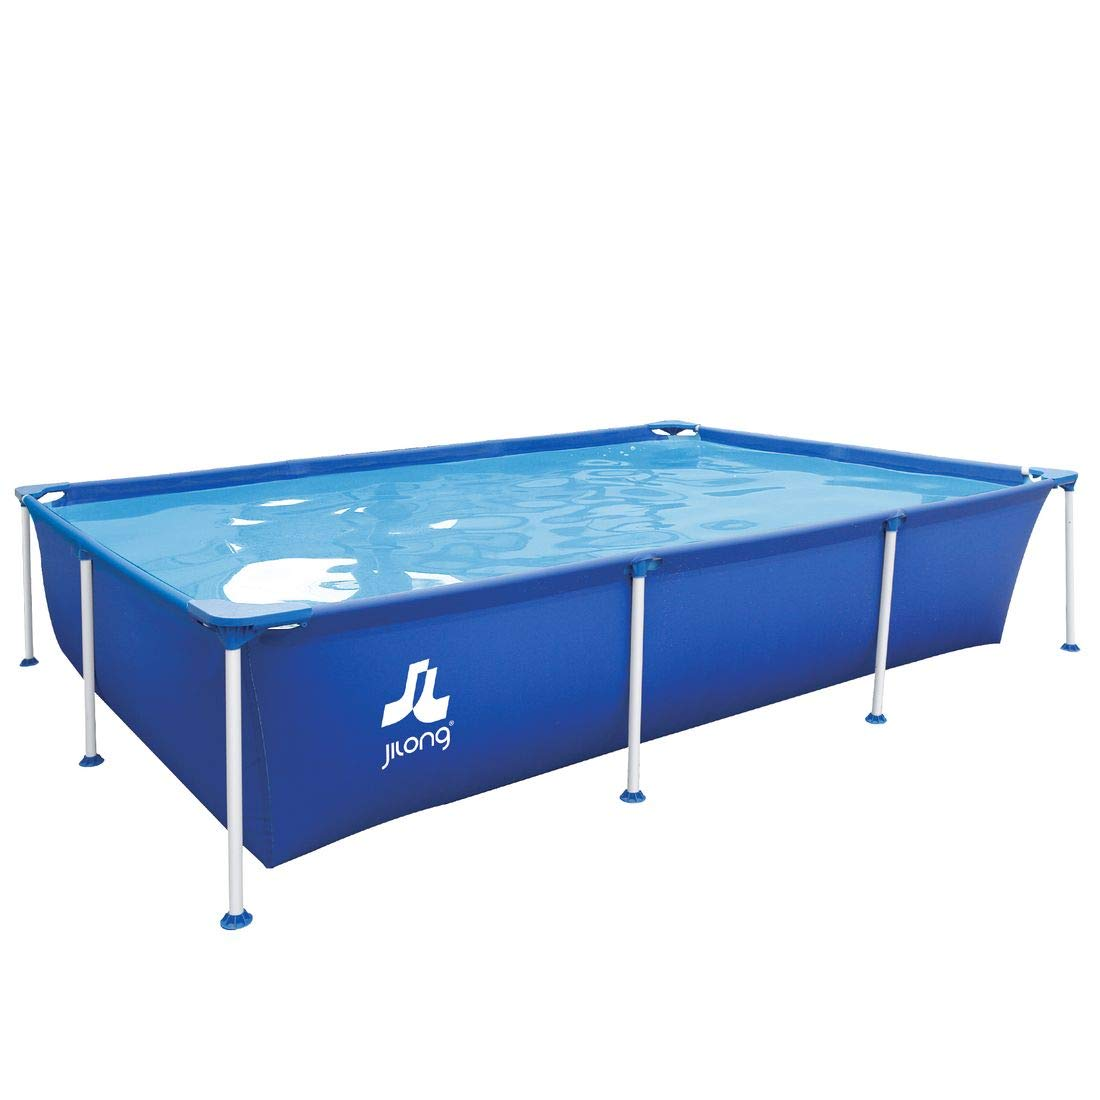 Hillington Foot Bath for Hot Tubs Swimming Pools and Spas-Non Slip Grip-Keep the Grit Out